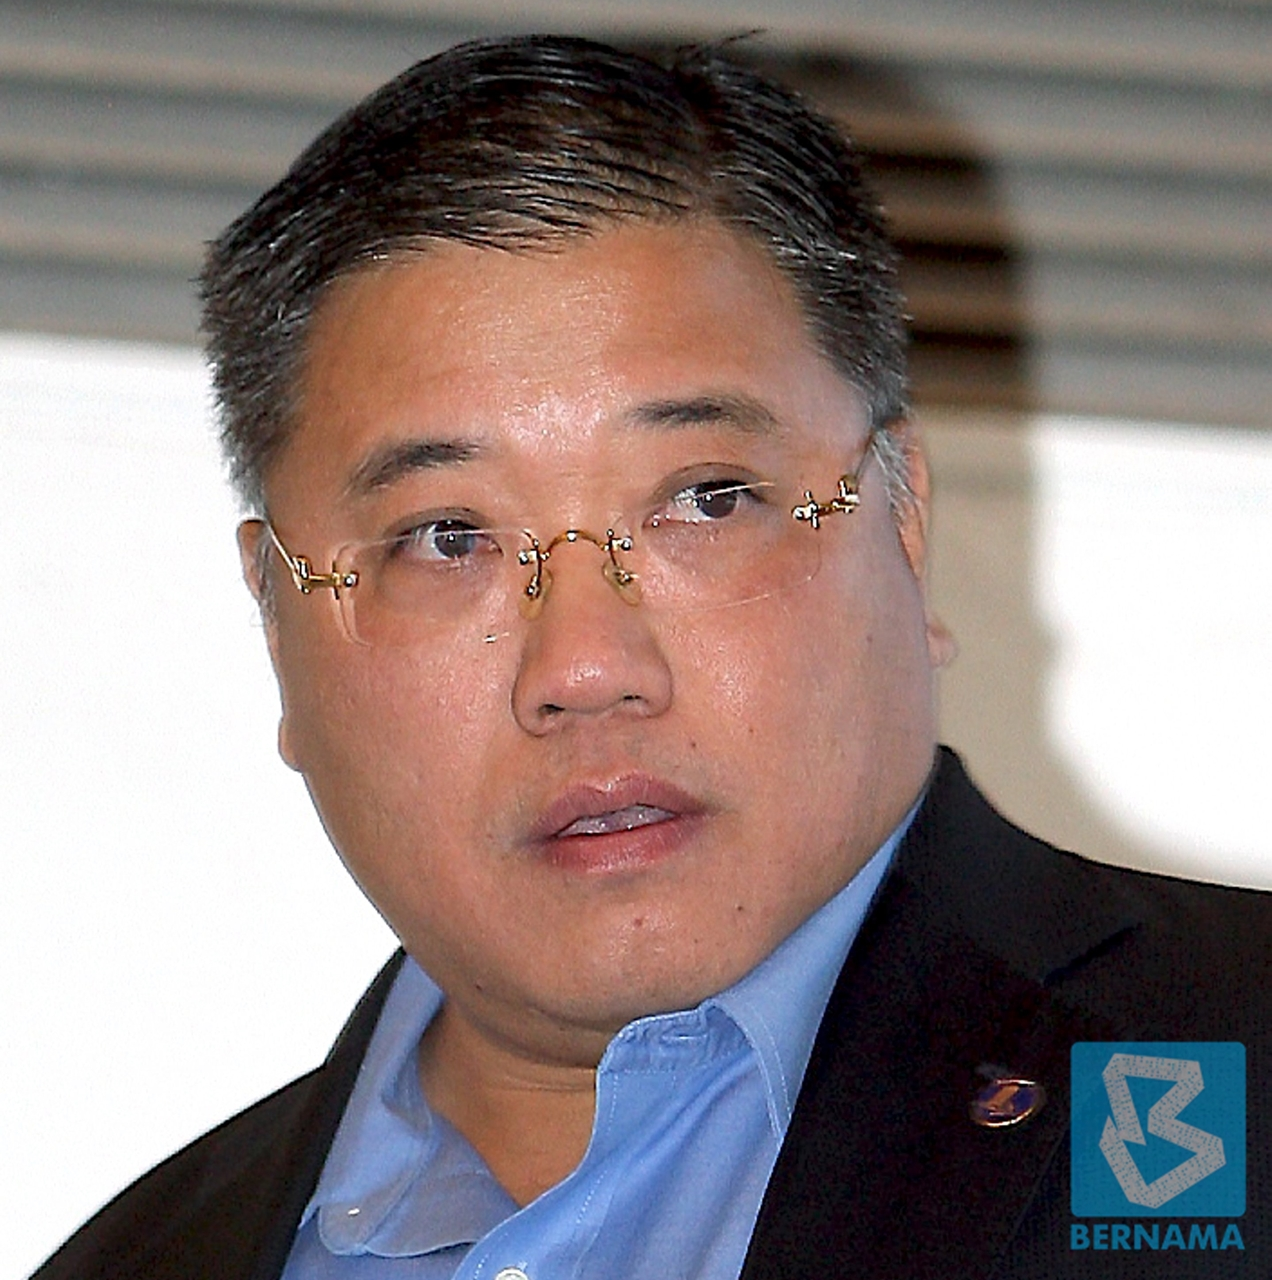 Tiong urges Bintulu authorities to consider using Sosma against organised crime